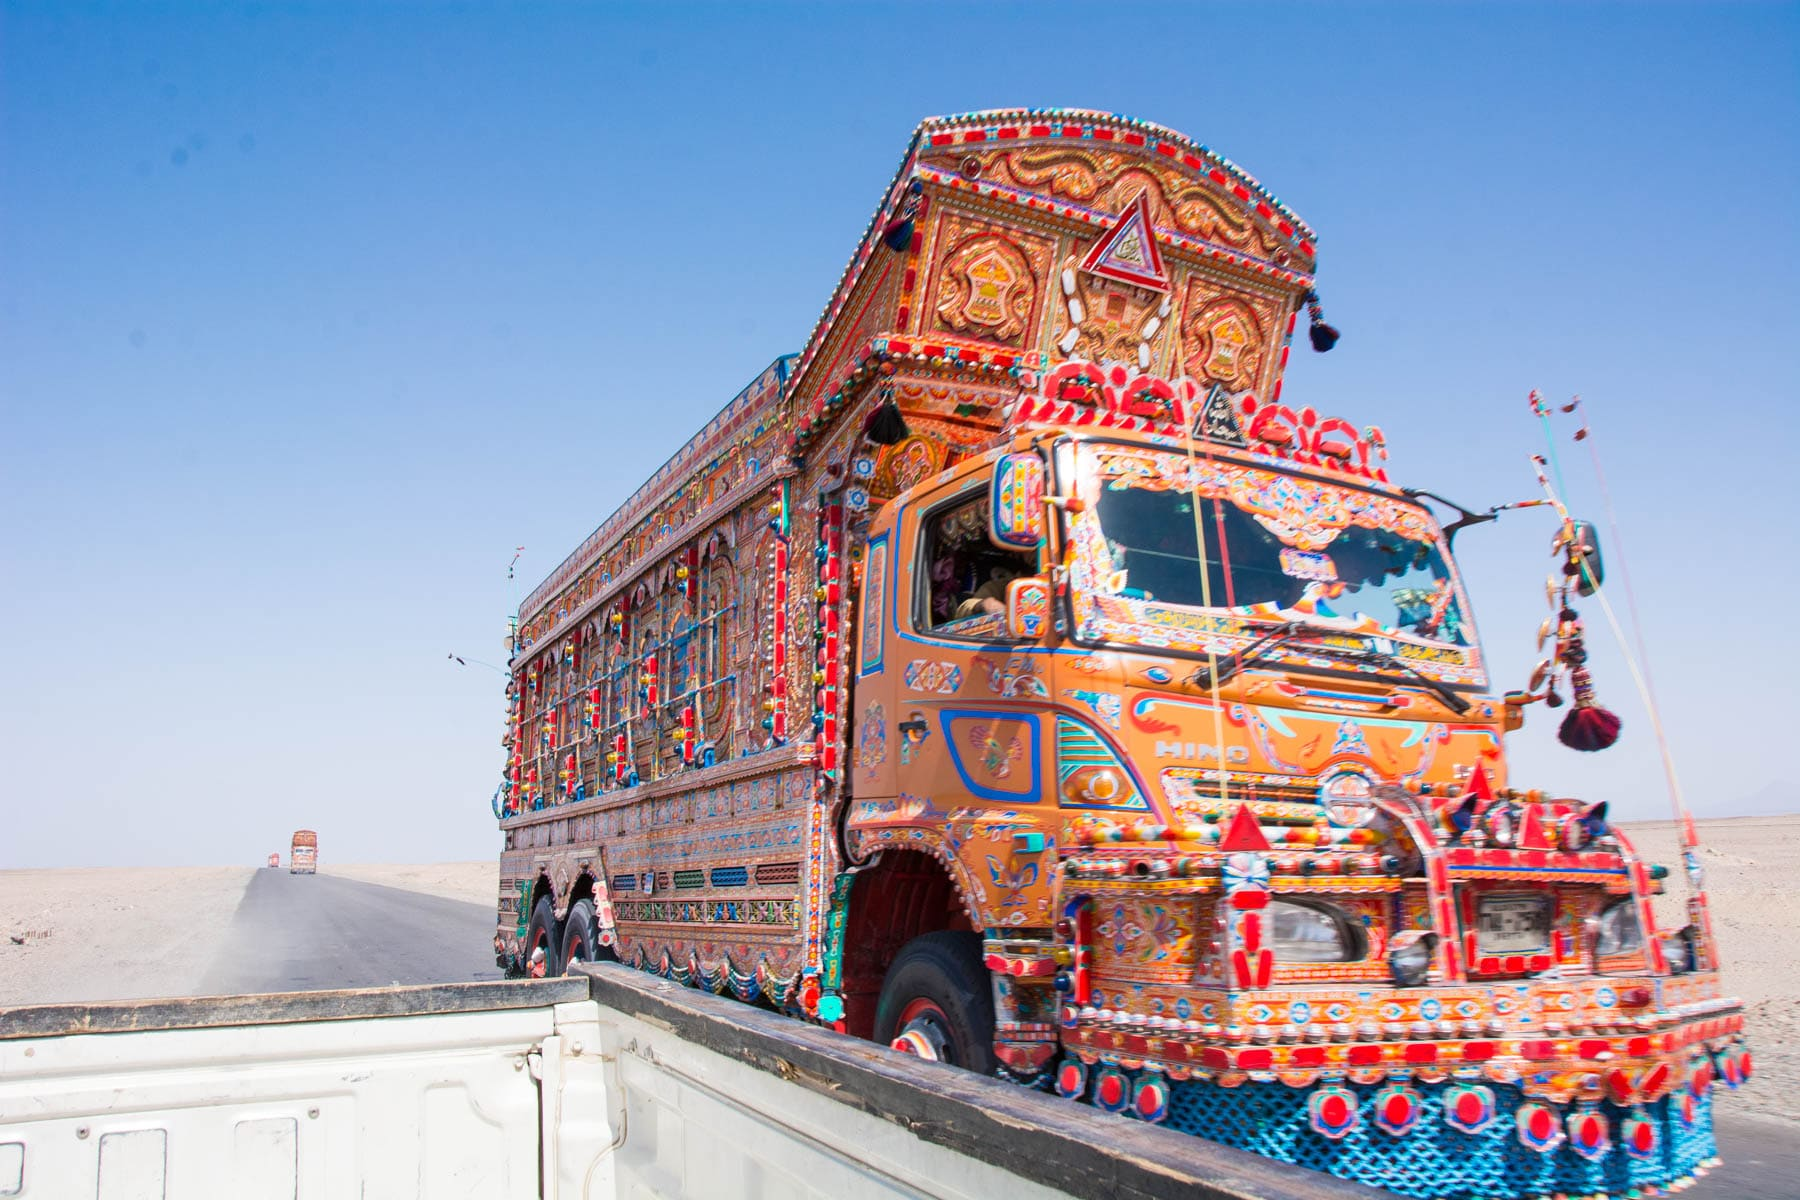 A decorated truck driving through Balochistan province, Pakistan.